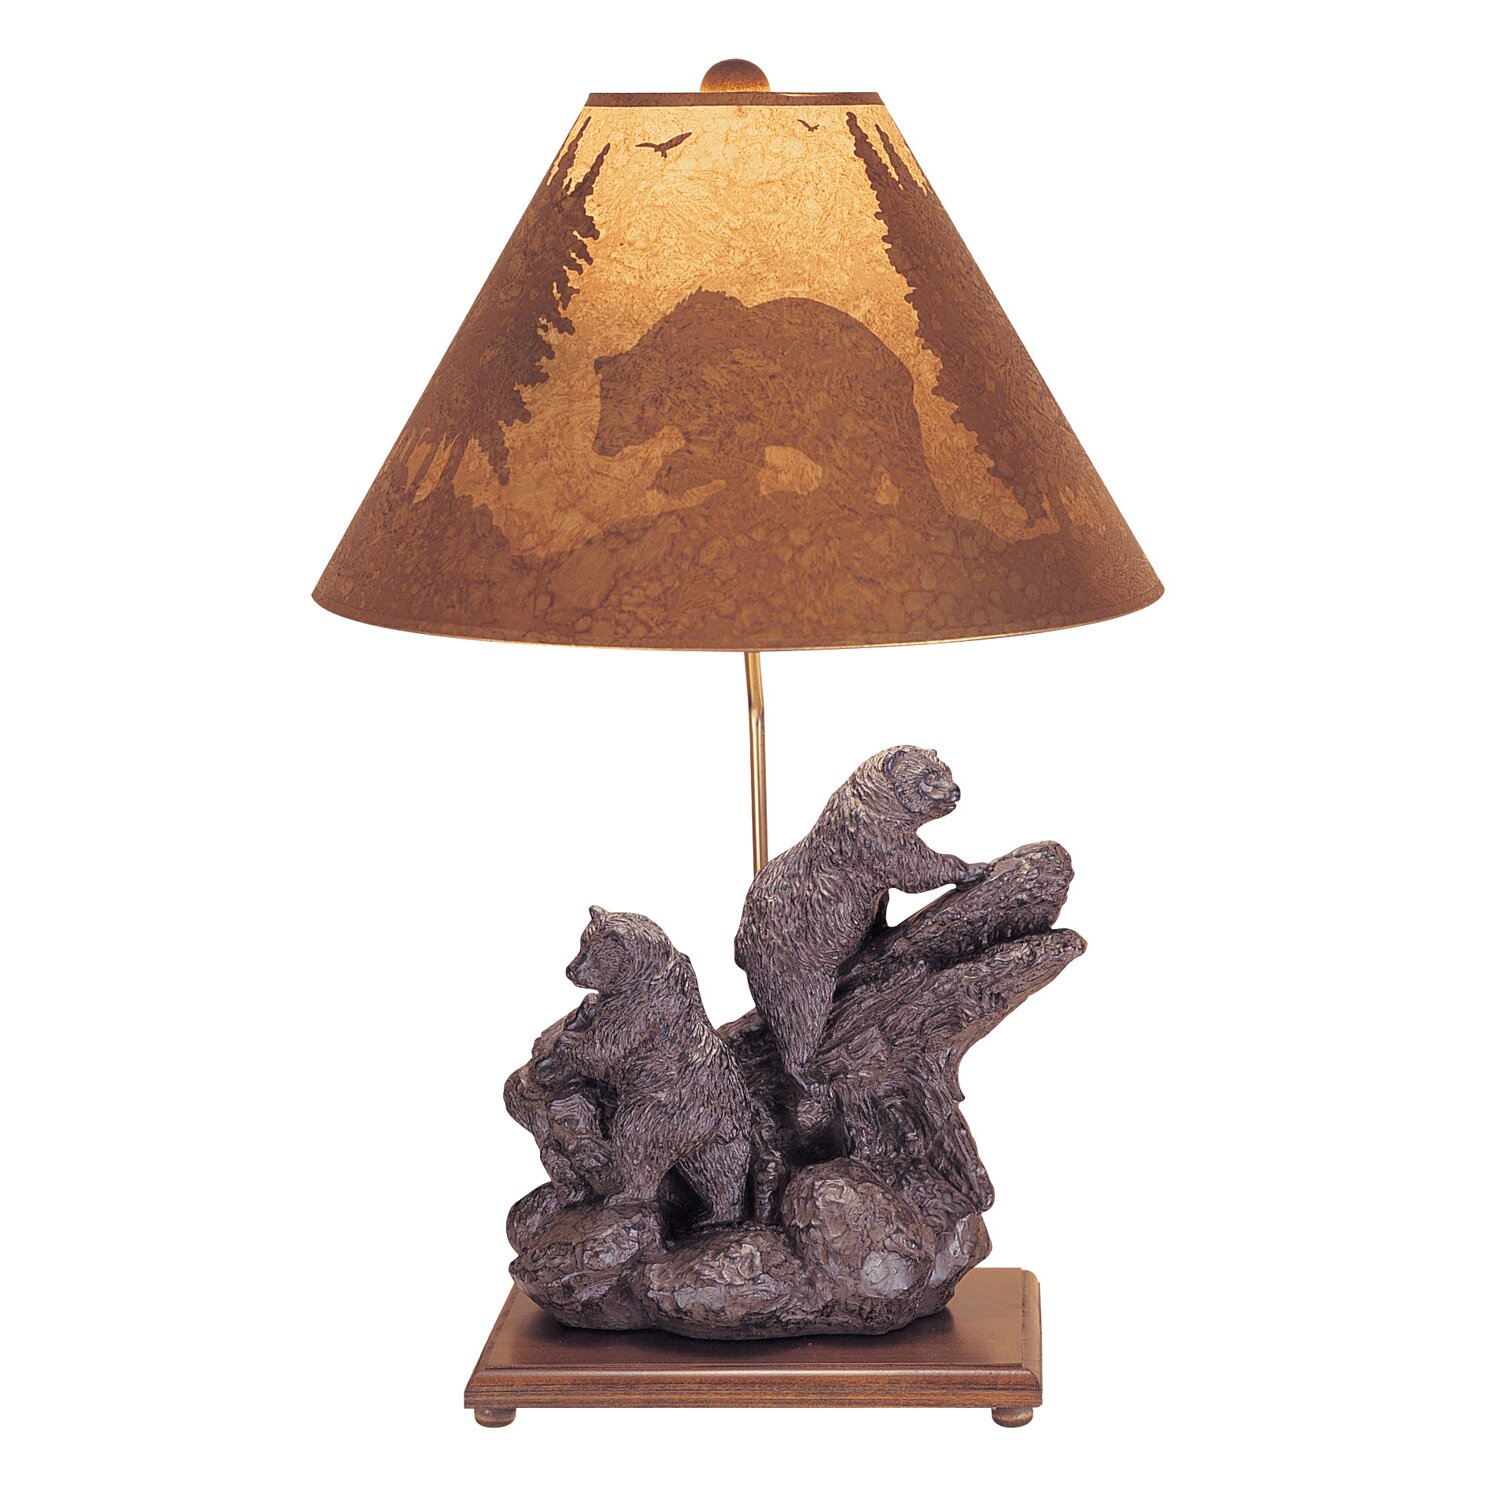 Bears Pool Table Lamp : Mario industries climbing bear table lamp in brown